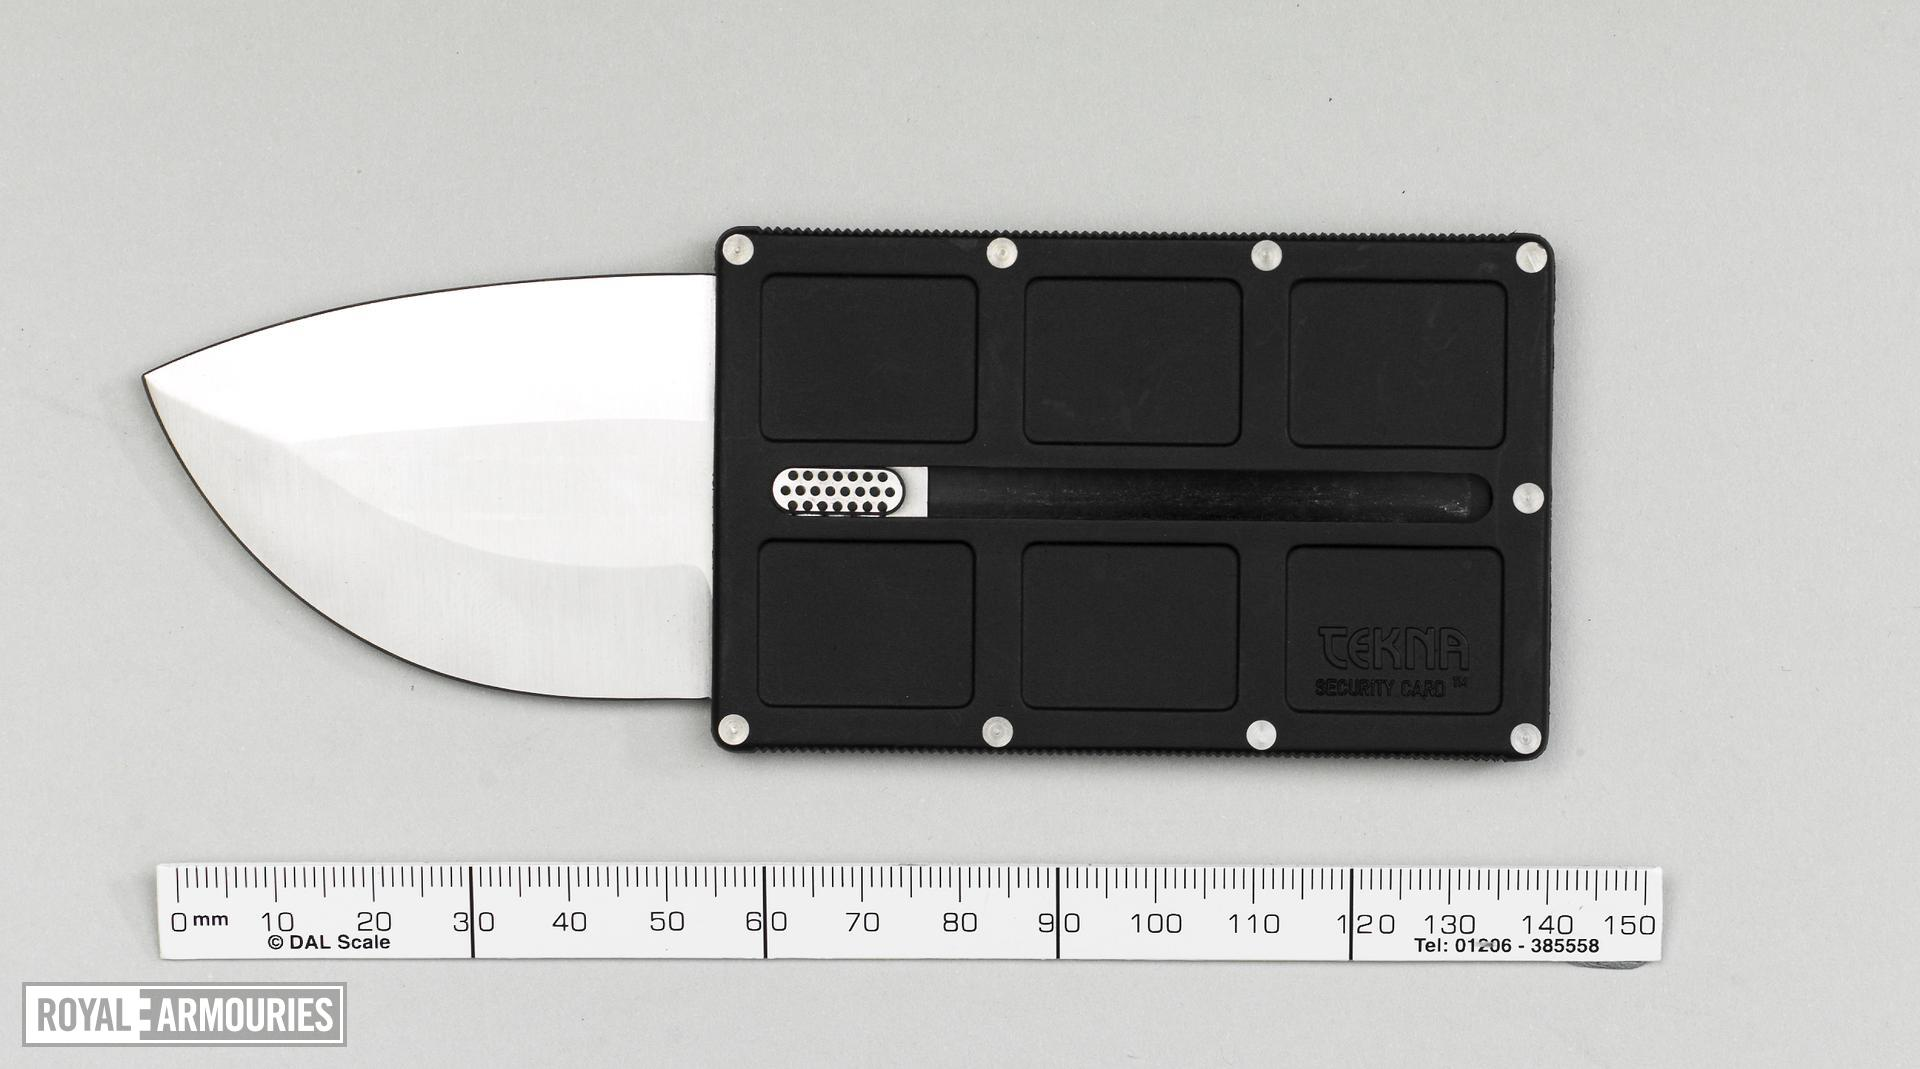 Knife Credit card knife. The Tekna Security Card.